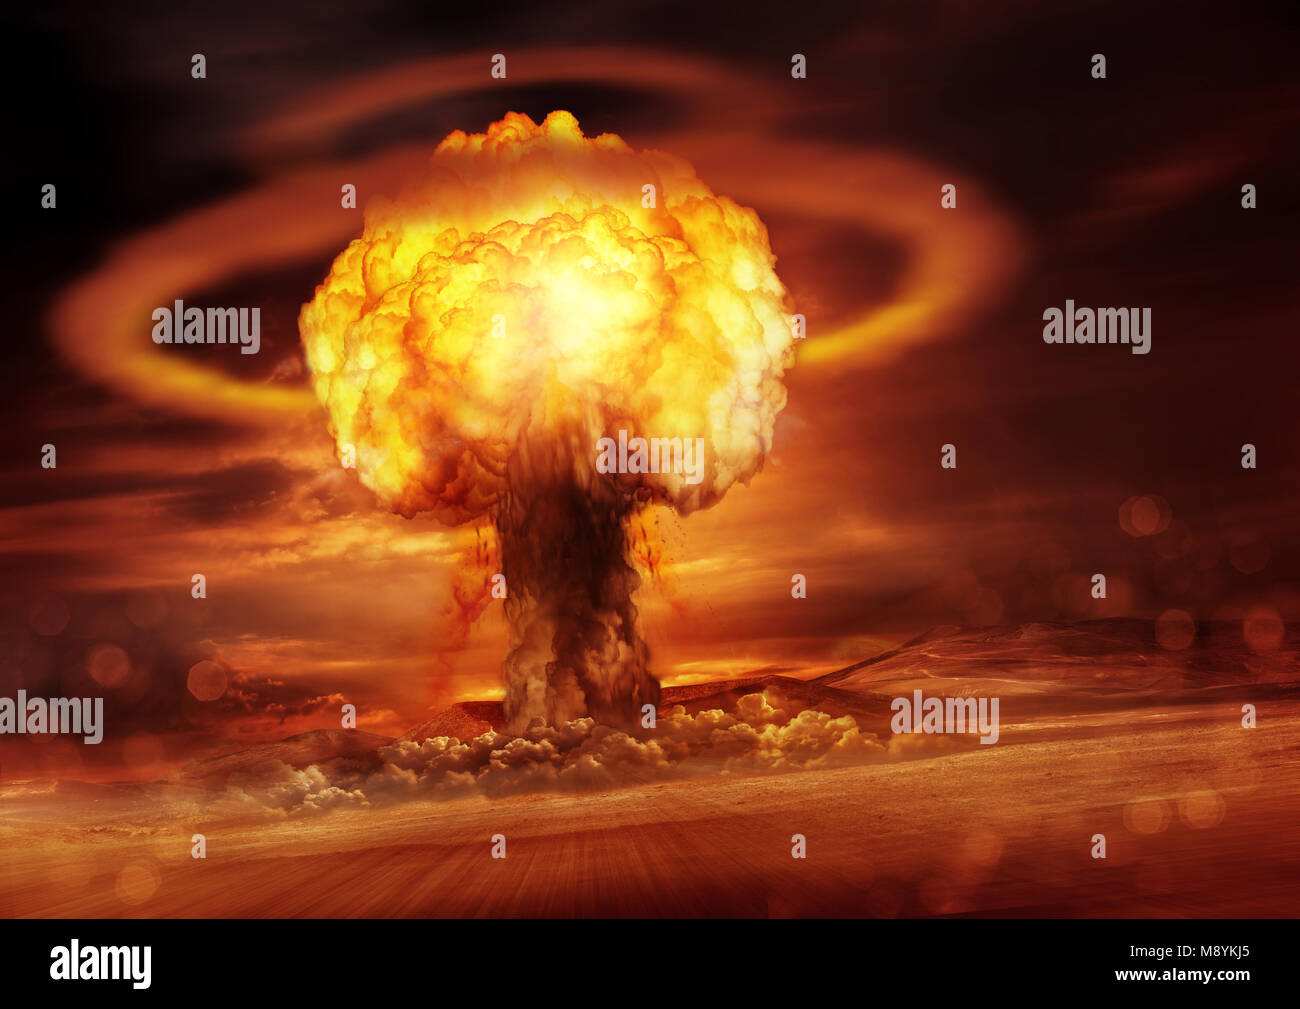 A nuclear bomb explosion causing shock waves. Mixed media illustration. - Stock Image